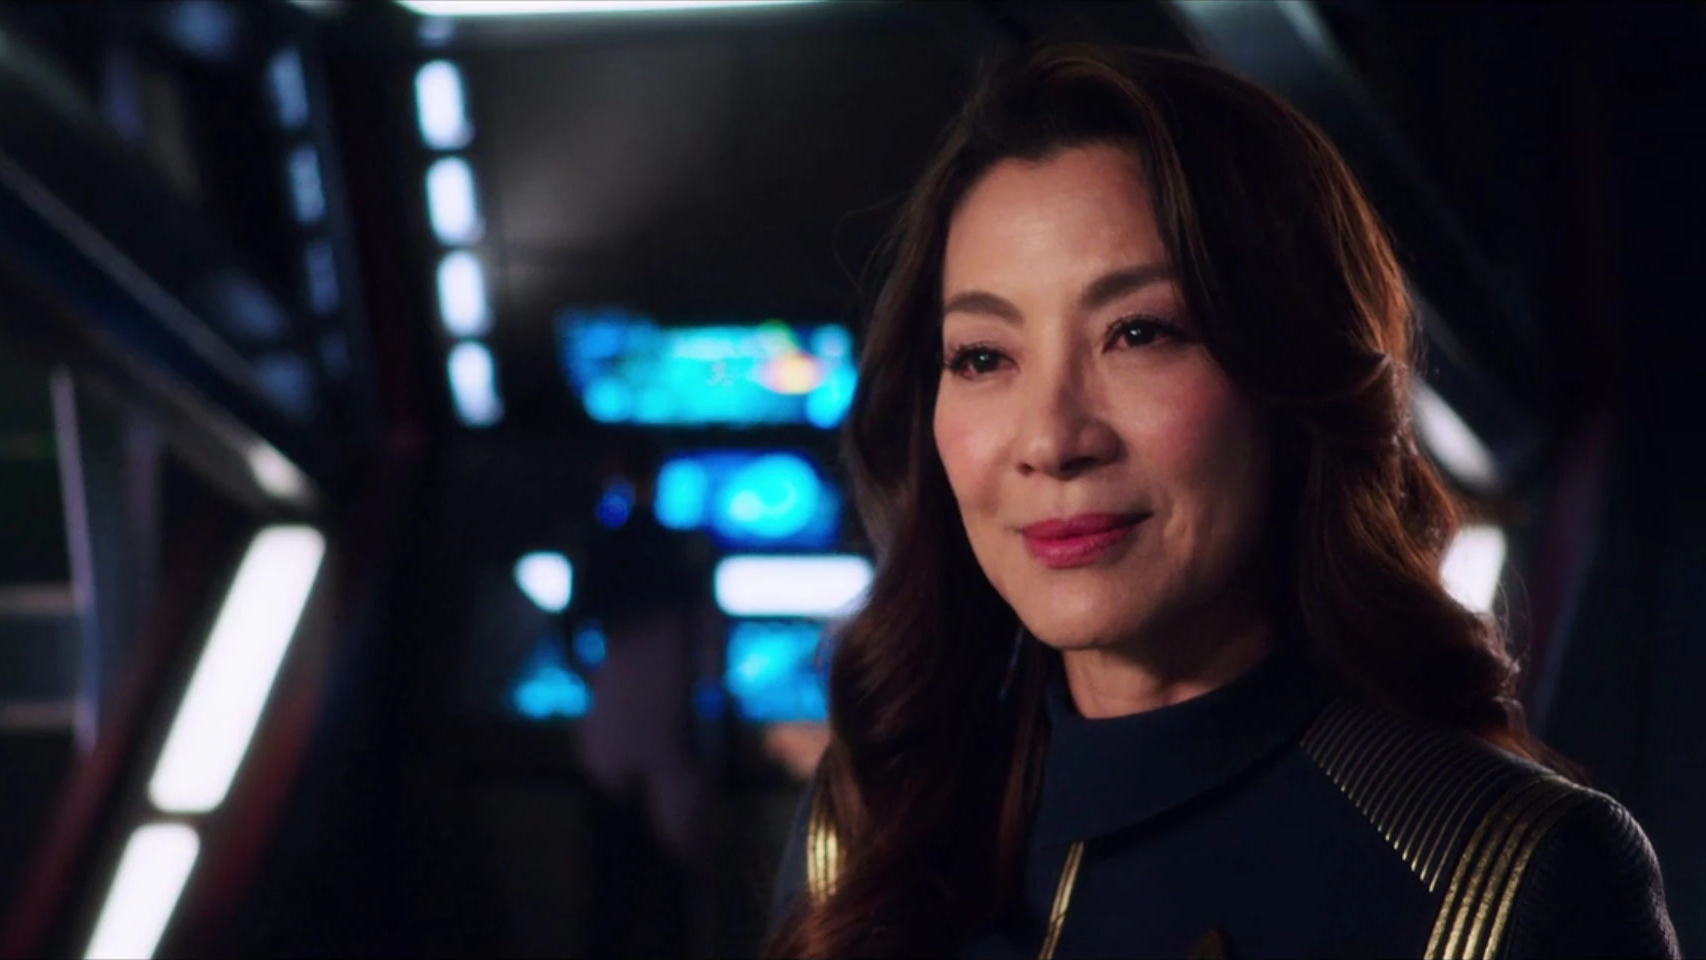 Report: Michelle Yeoh Could Be Getting Her Own Star Trek Spinoff